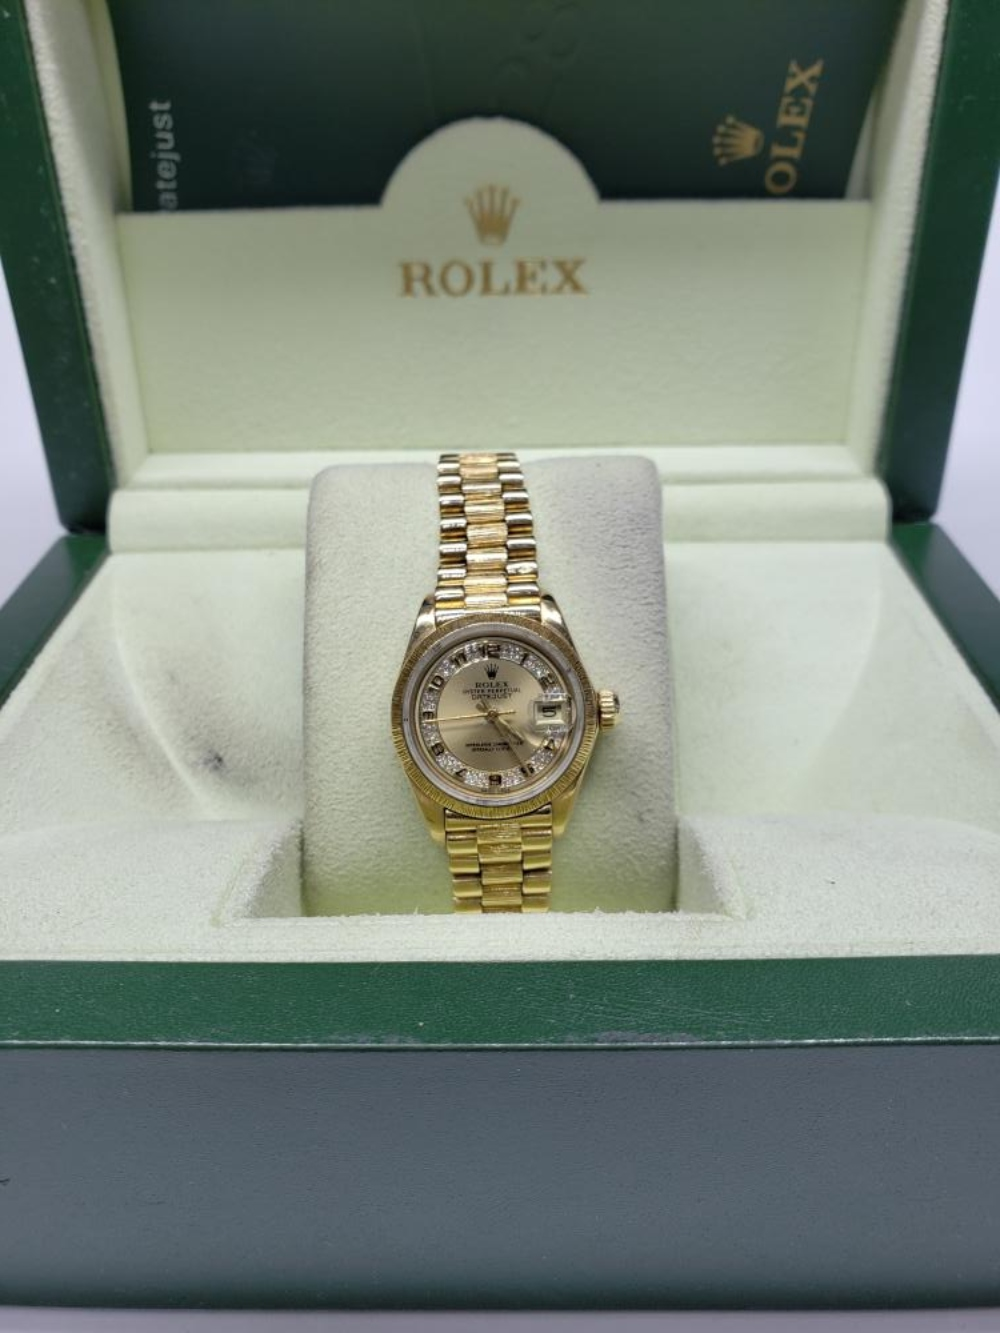 Lot 151: Rolex President Oyster Perpetual DateJust 18k Yellow Gold Myriad Diamond Dial Watch